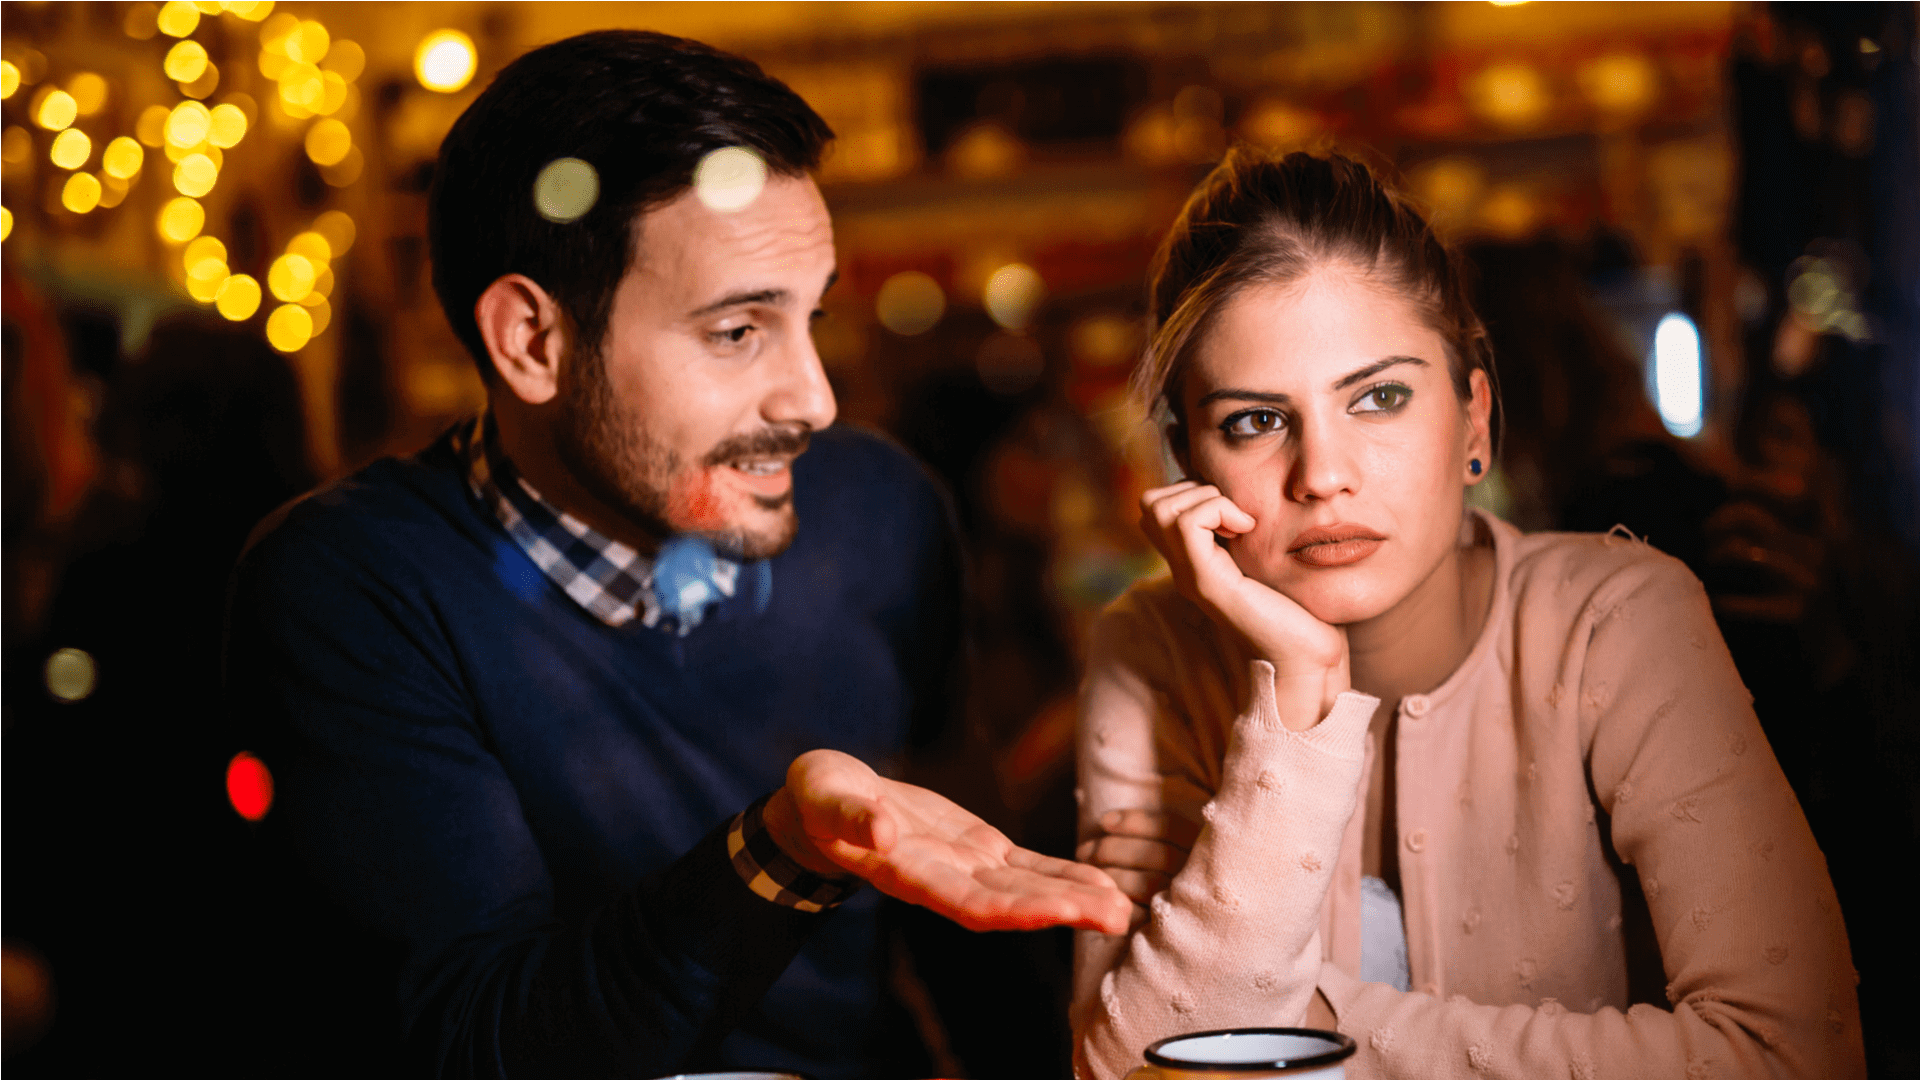 Spouse has Lost Interest in You